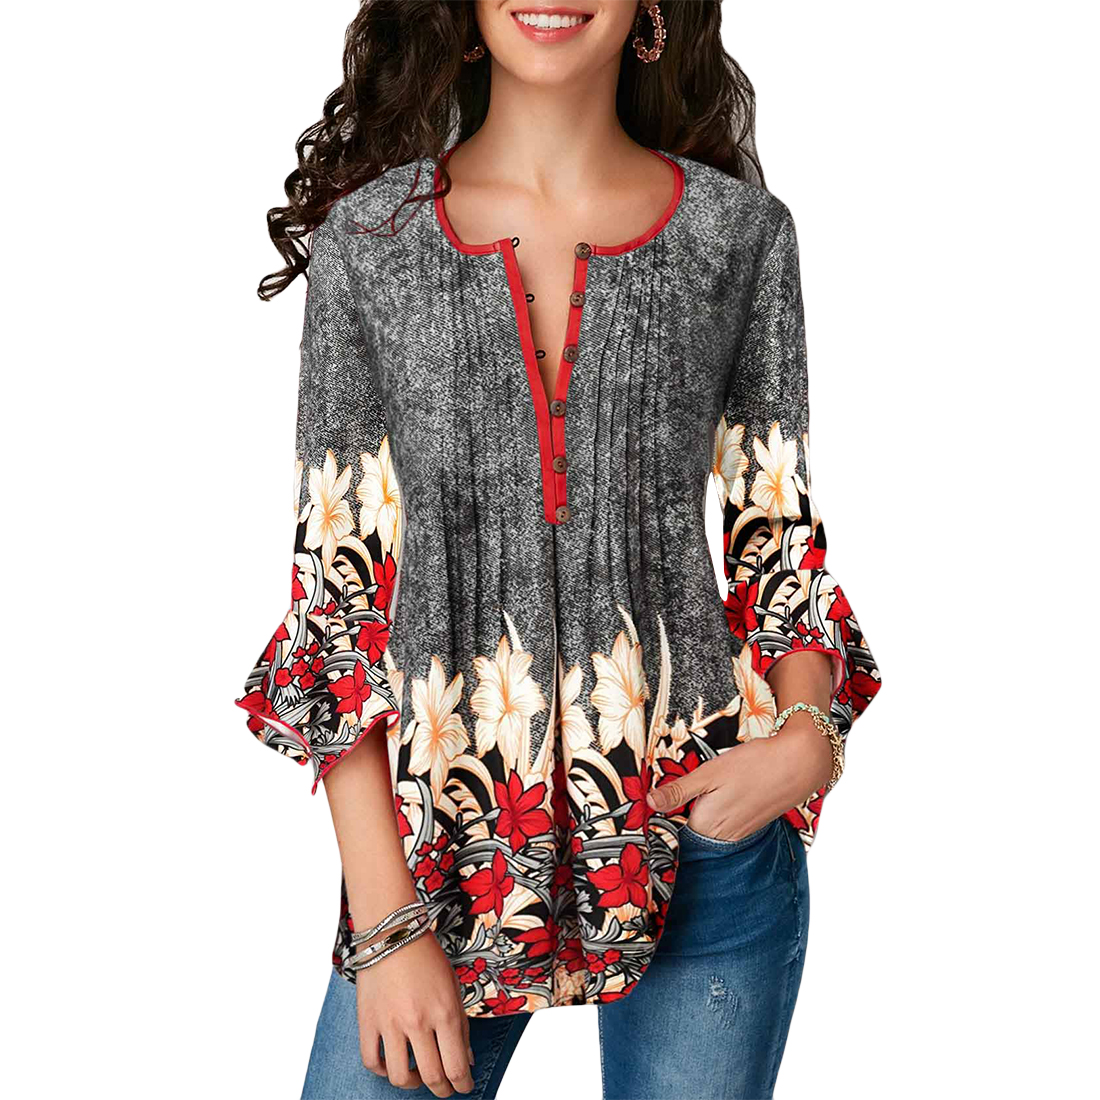 Women Blouse Shirts Three Quarter Sleeve Floral Print Causal Loose Tunic 2019 Fashion Plus Size Ladies Blouses Clothing 5xl(China)